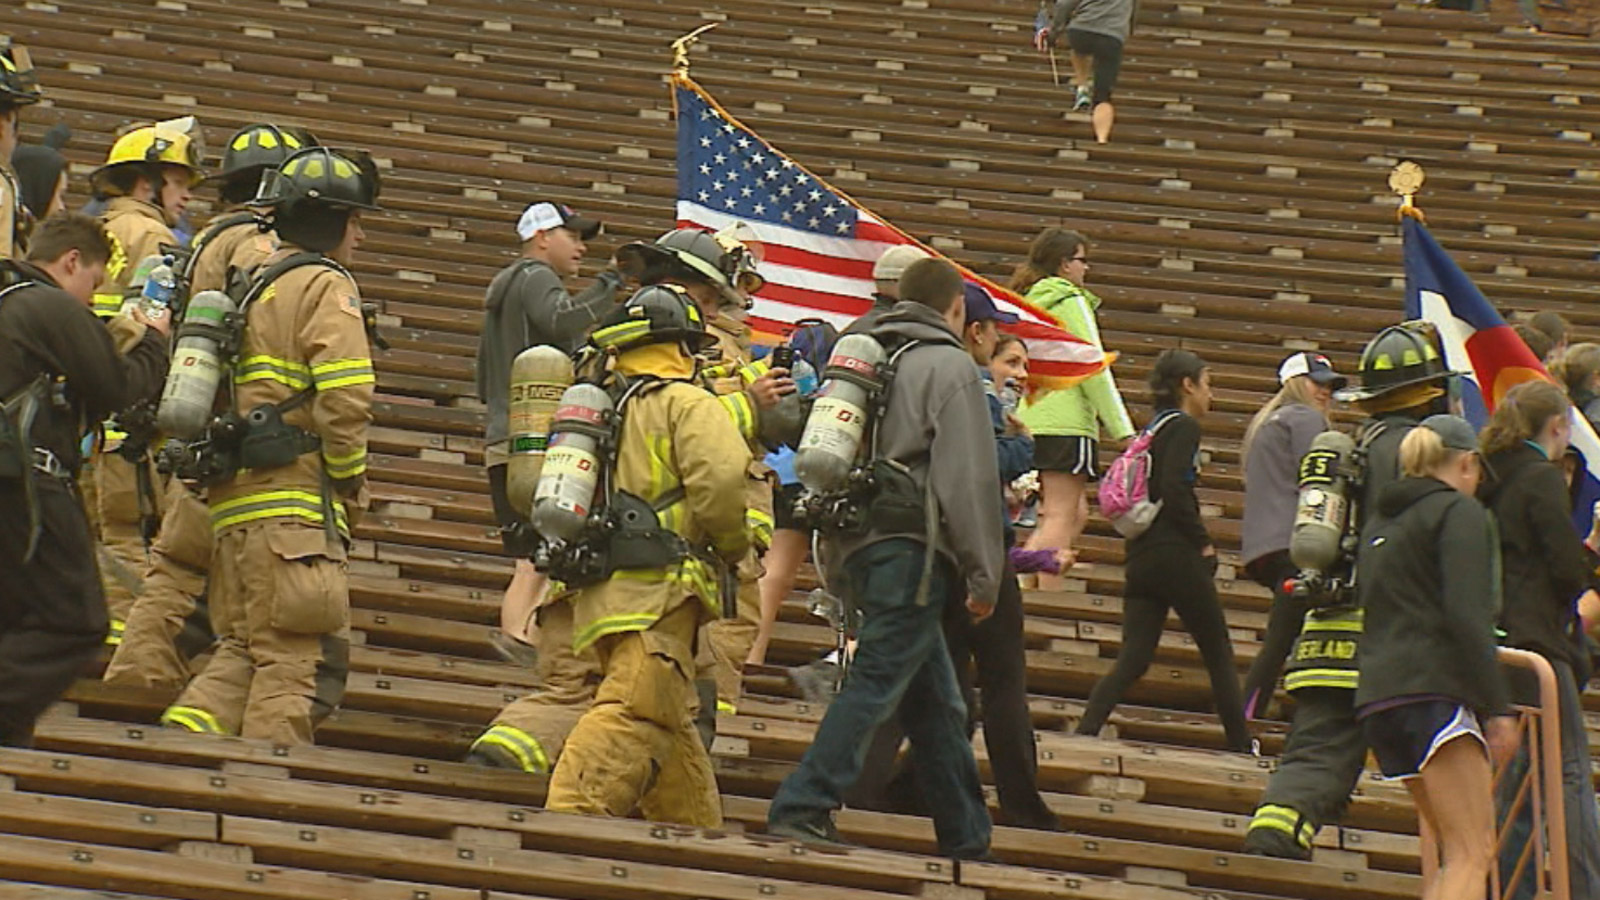 Firefighters join others at Red Rocks Amphitheatre to honor those killed on 9/11. (credit: CBS)